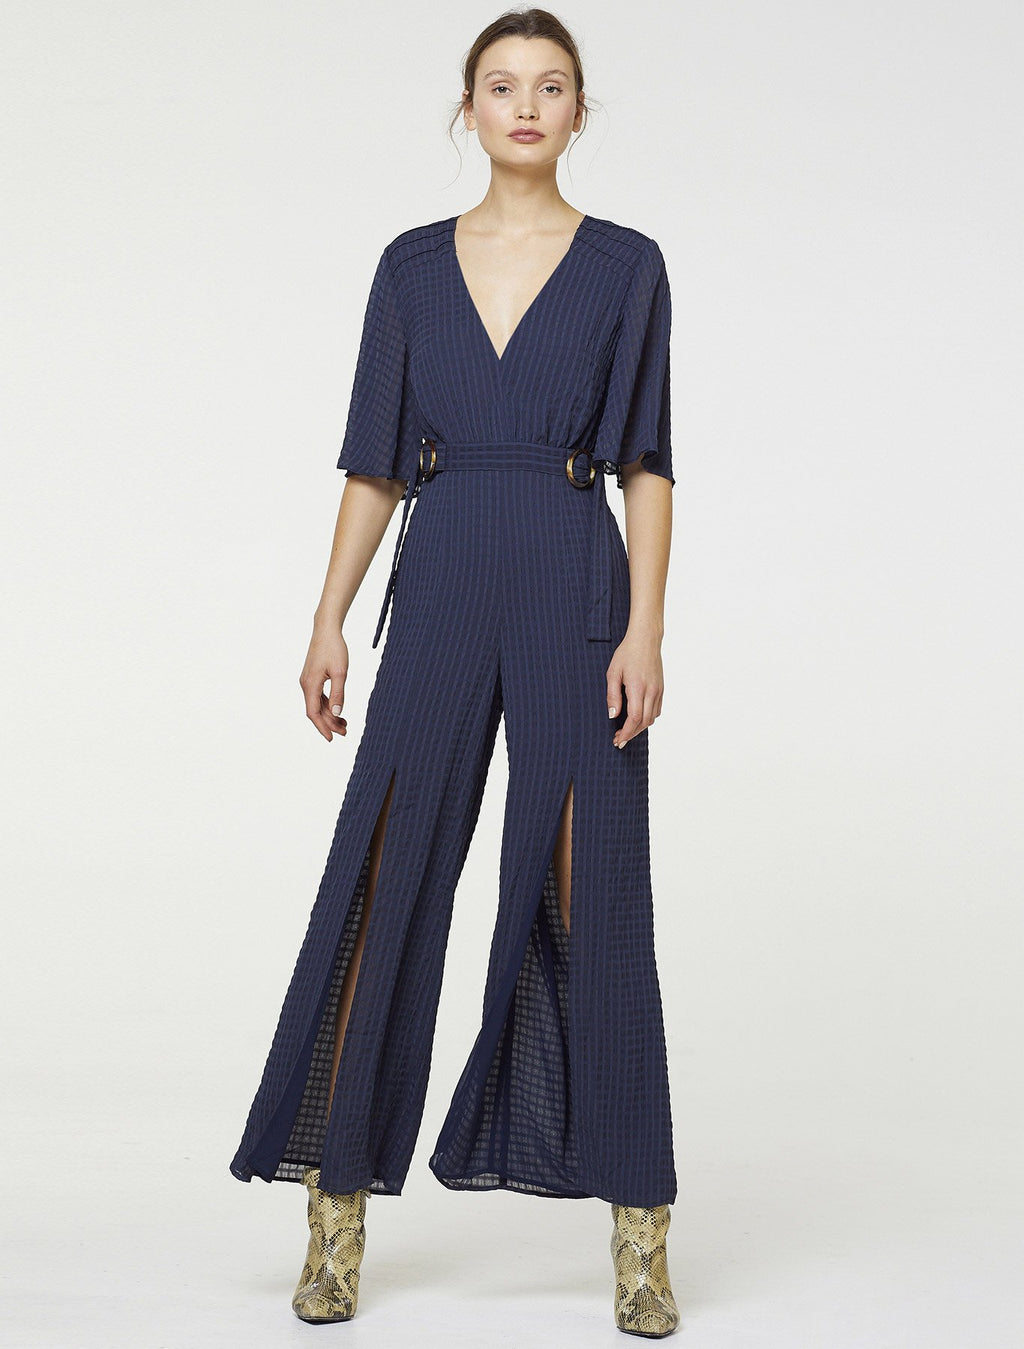 Stevie May Belted Jumpsuit